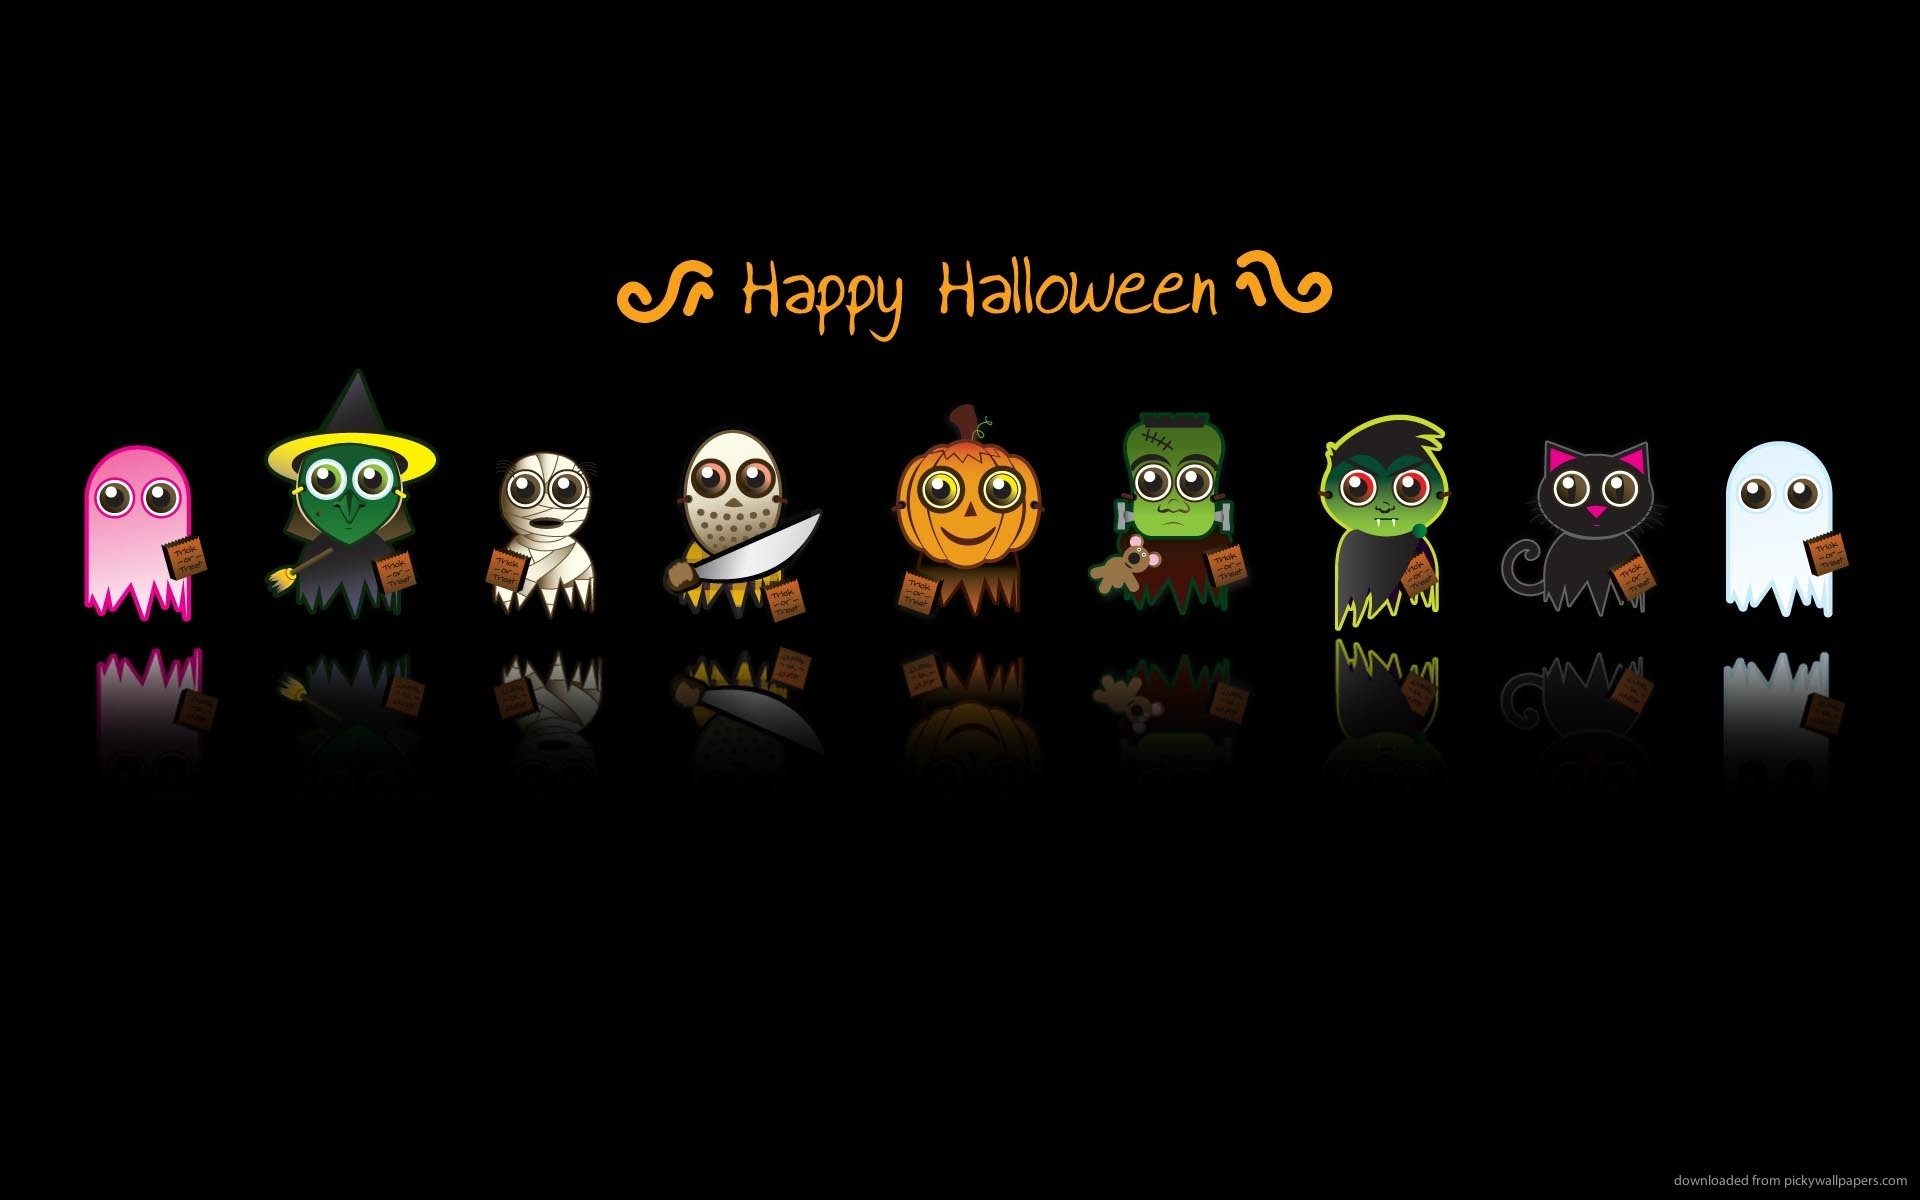 ... horizontal [ratio] => 16x10 [color] => [itemTitle] => Array ( [0] => wallpaper [1] => wallpapers ) [options] => Array ( ) ) Halloween cute ...